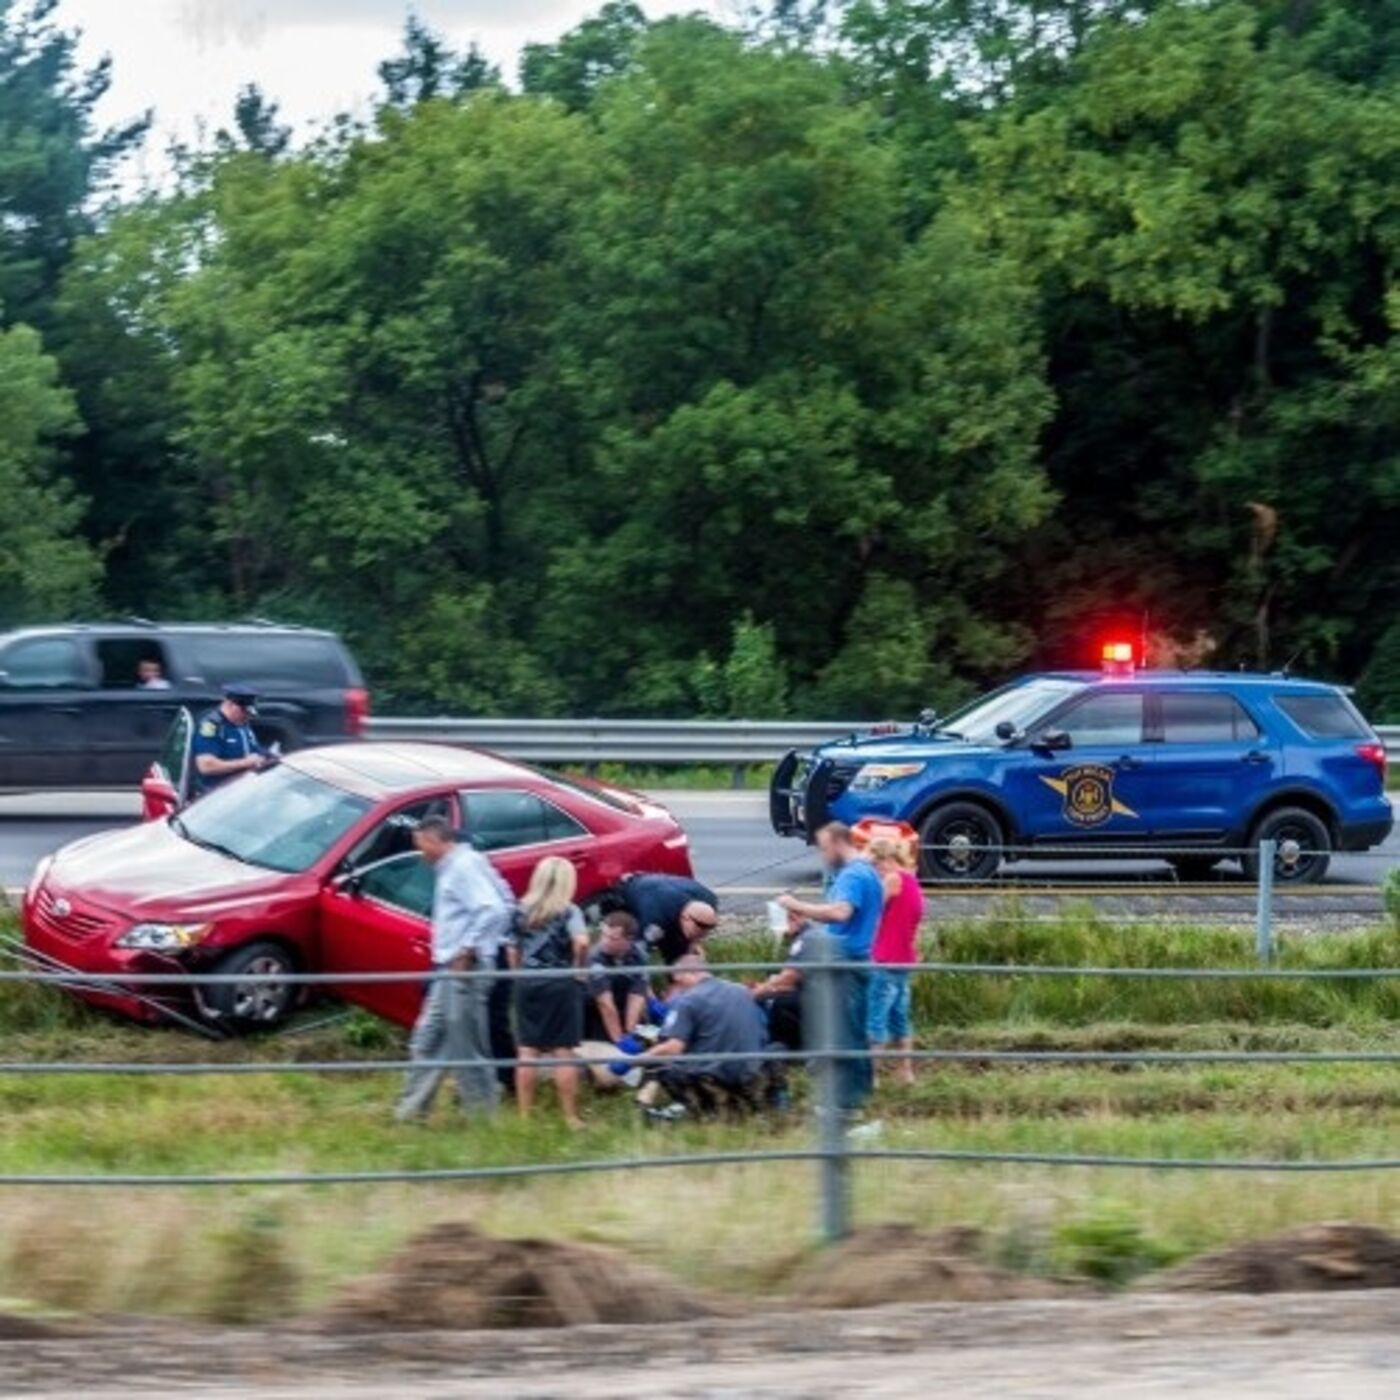 One more time: Fewer people on the roads but more fatal crashes. Why?